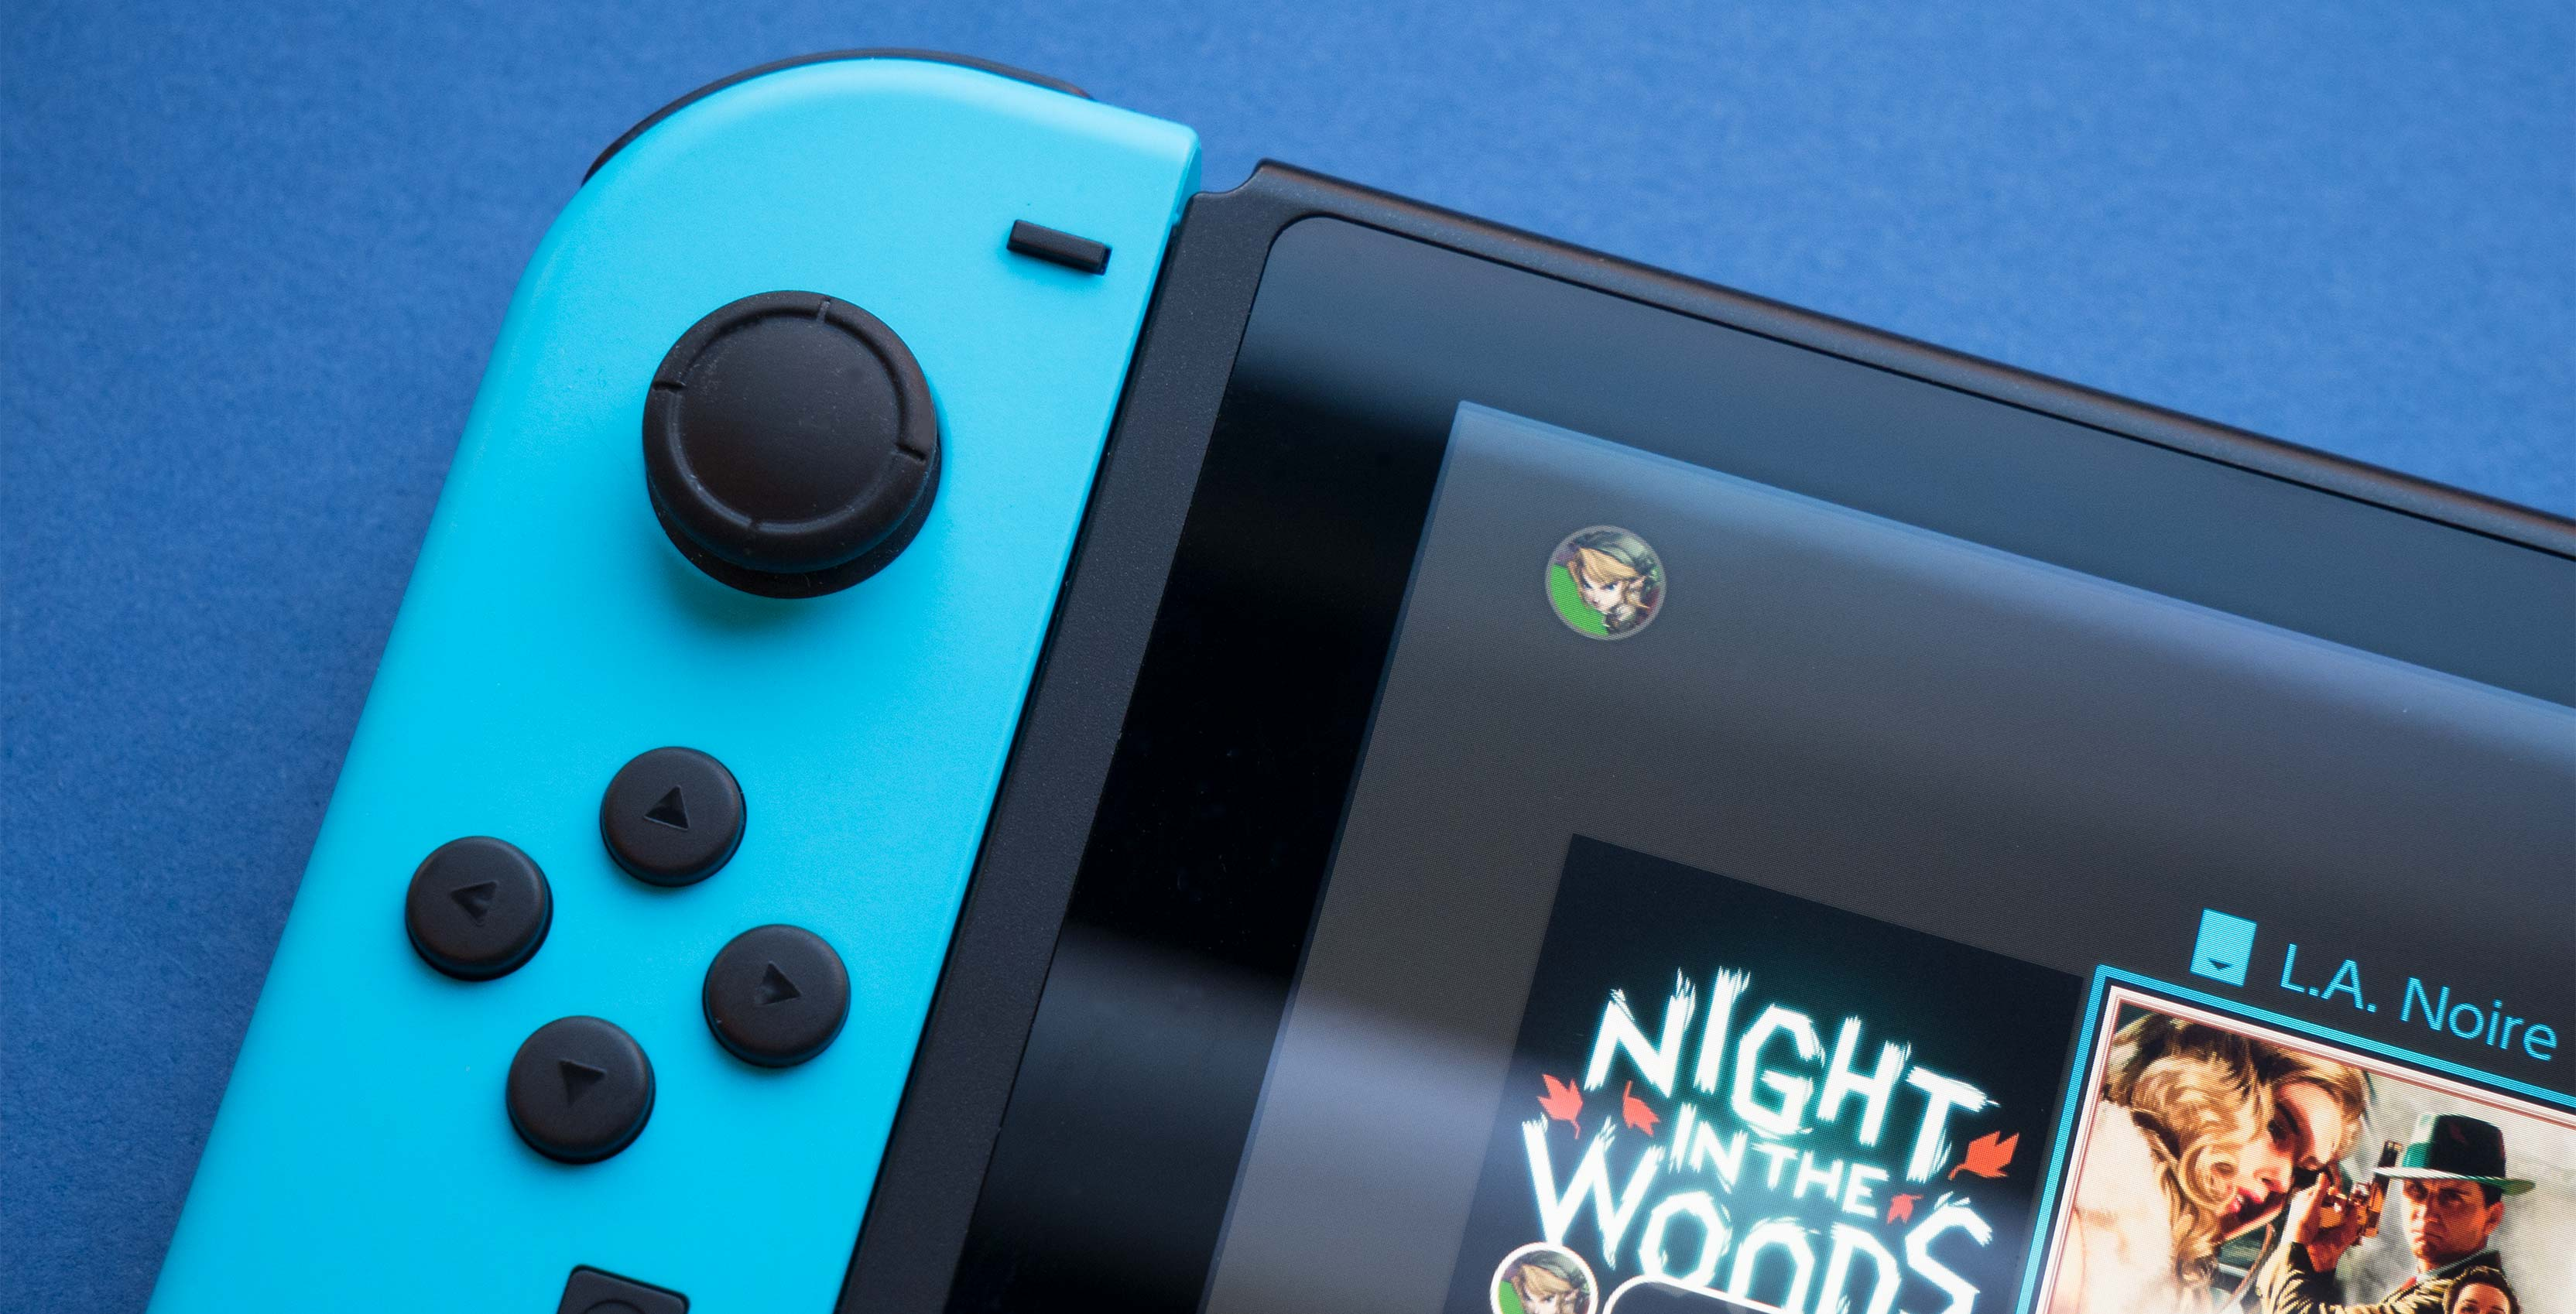 Nintendo Switch Play Time Data Will Be Restored in Future Update